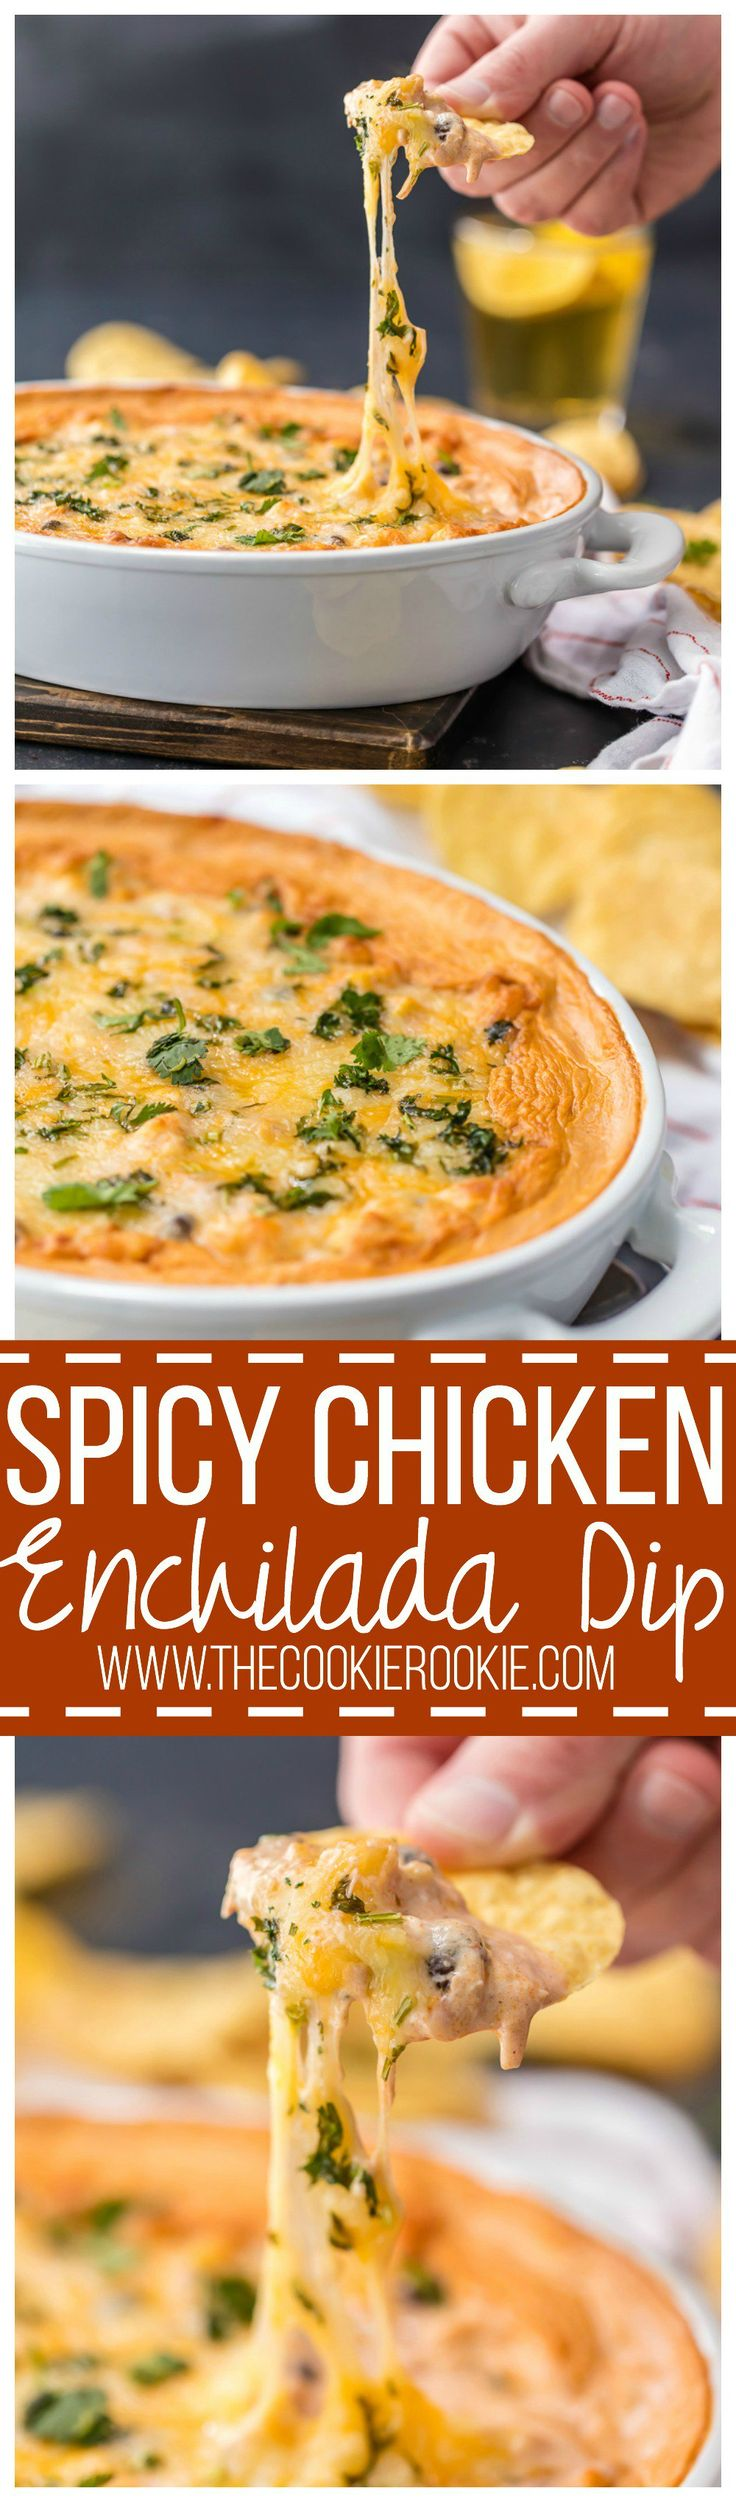 Spicy Chicken Enchilada Dip, the BEST DIP EVER! Full of beans, corn, chicken, cheese, enchilada sauce, and cream cheese! SO ADDICTING! Best tailgating dip for any party!